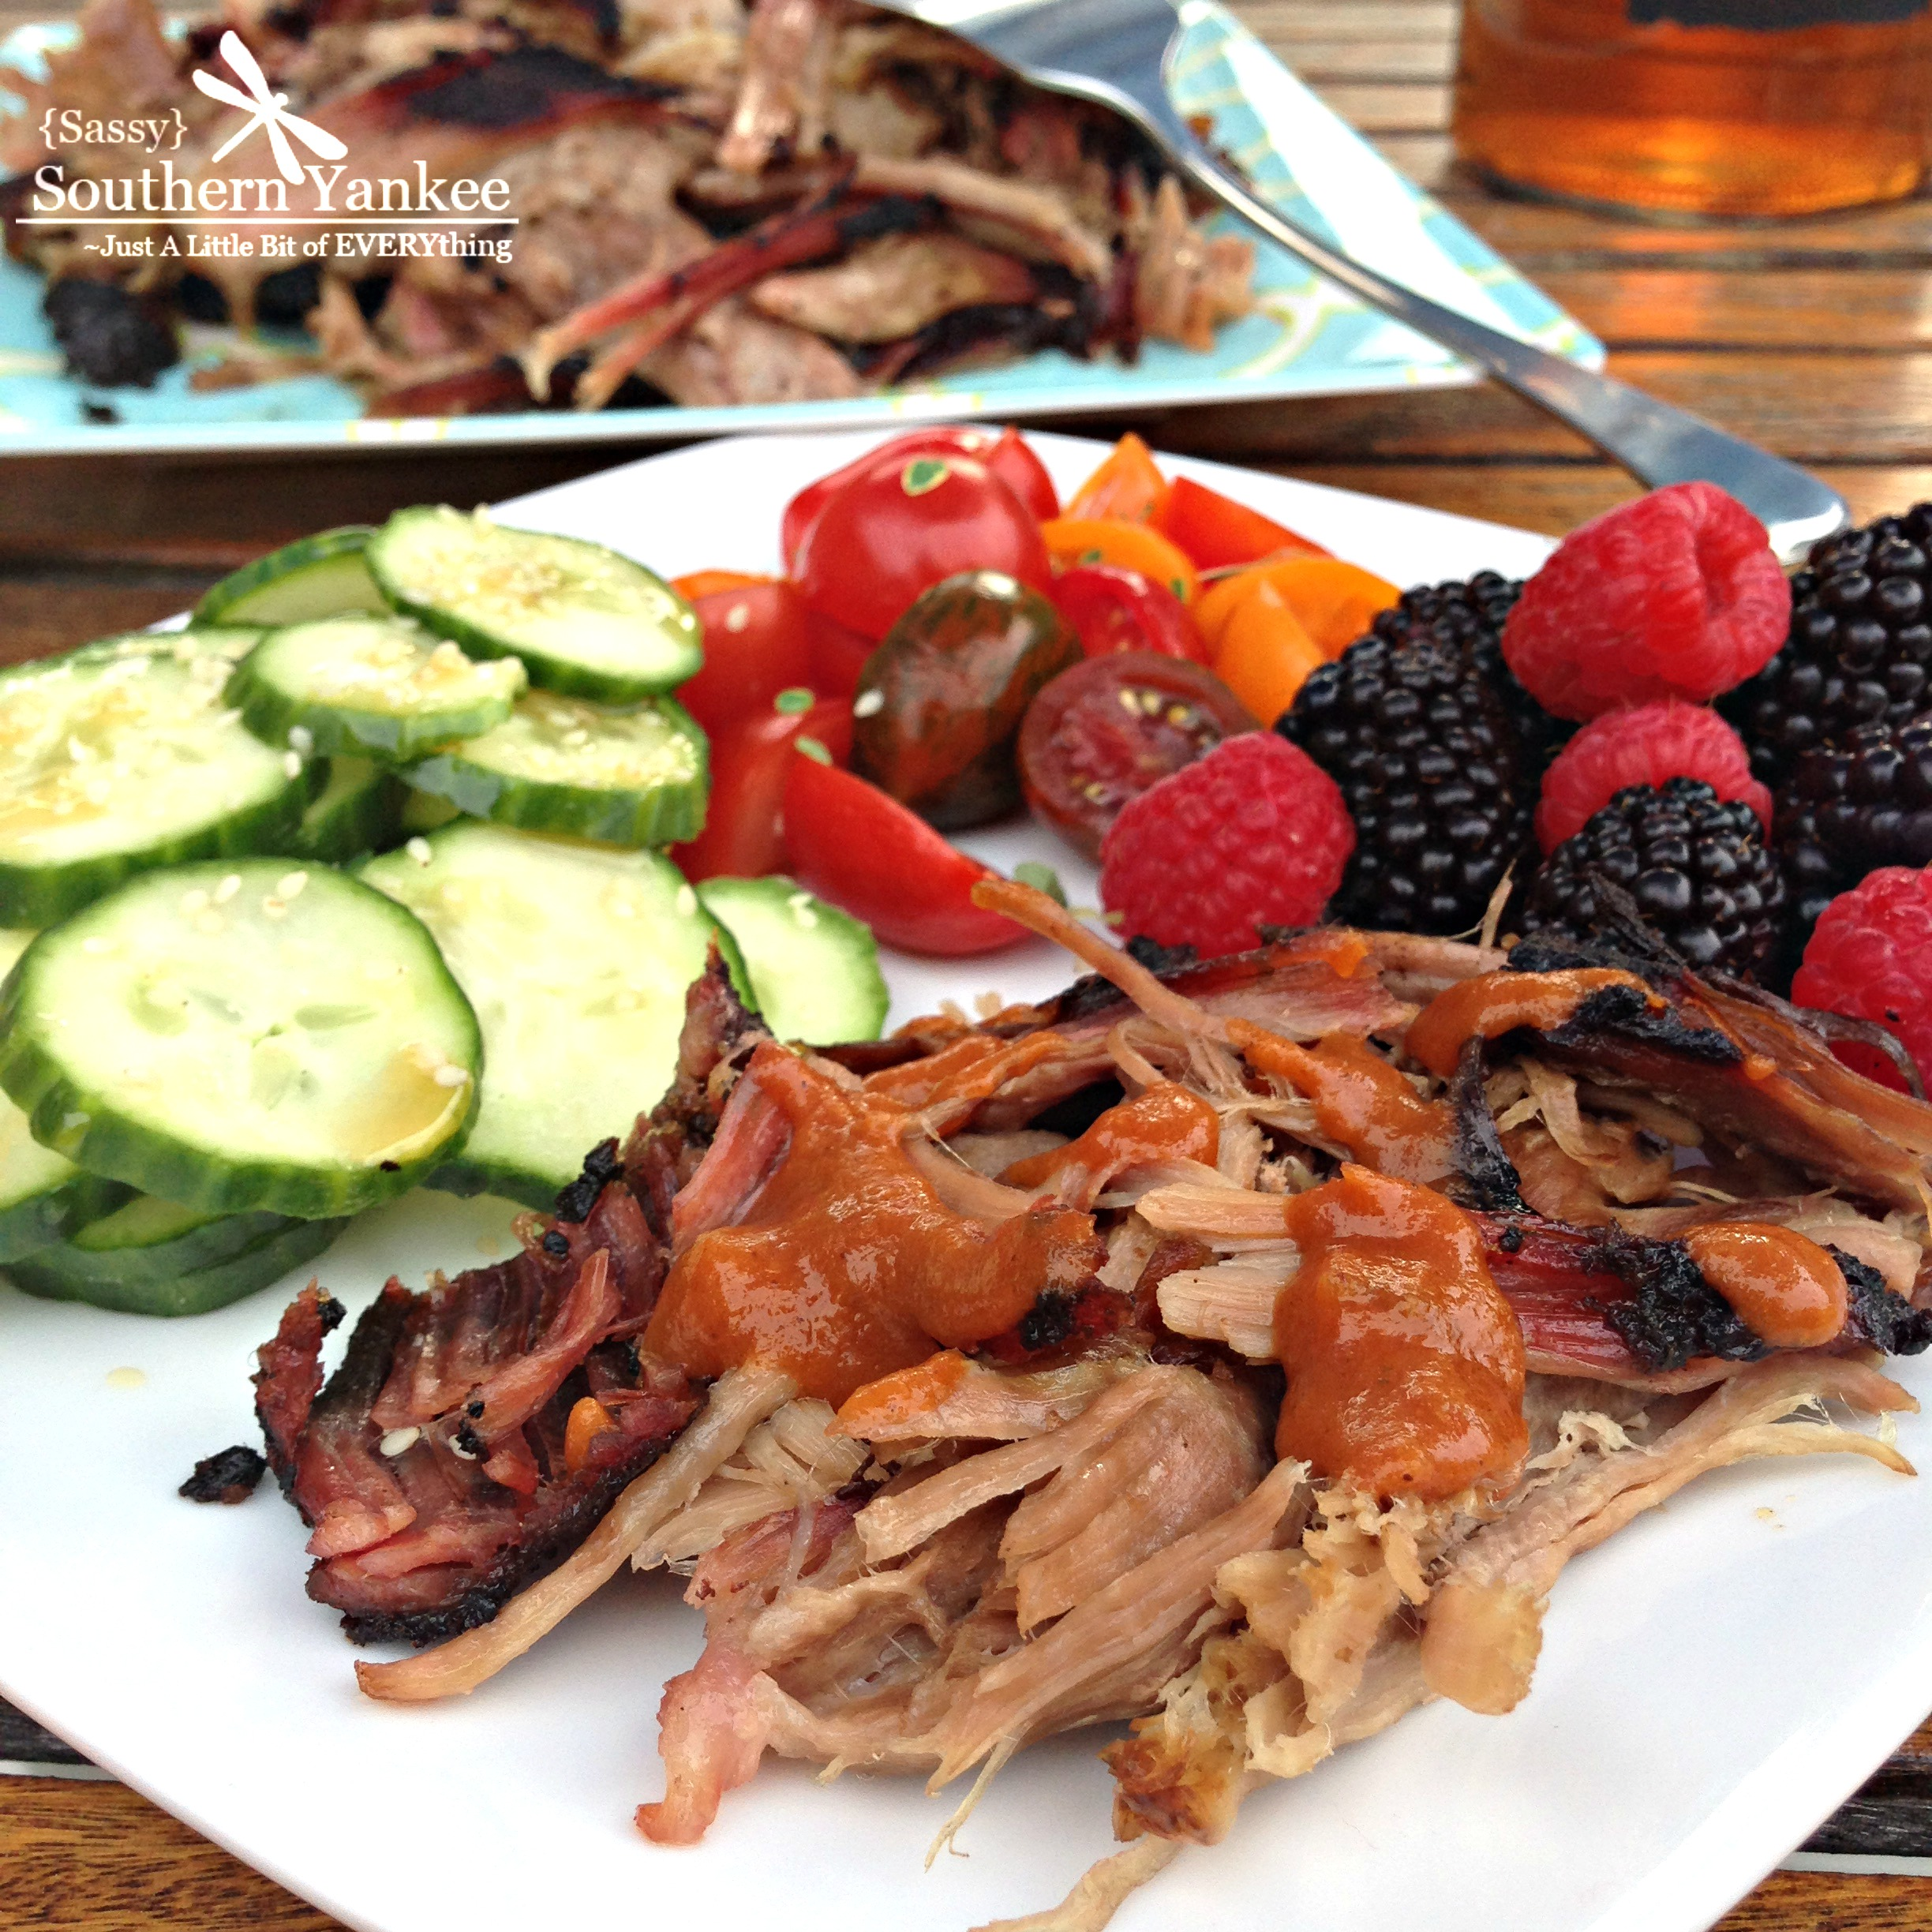 Barbecue Means Different Things To Different People In Different Parts Of The Country To Me It Means Smoked Pork Shoulder That Has Been Grilled Using The